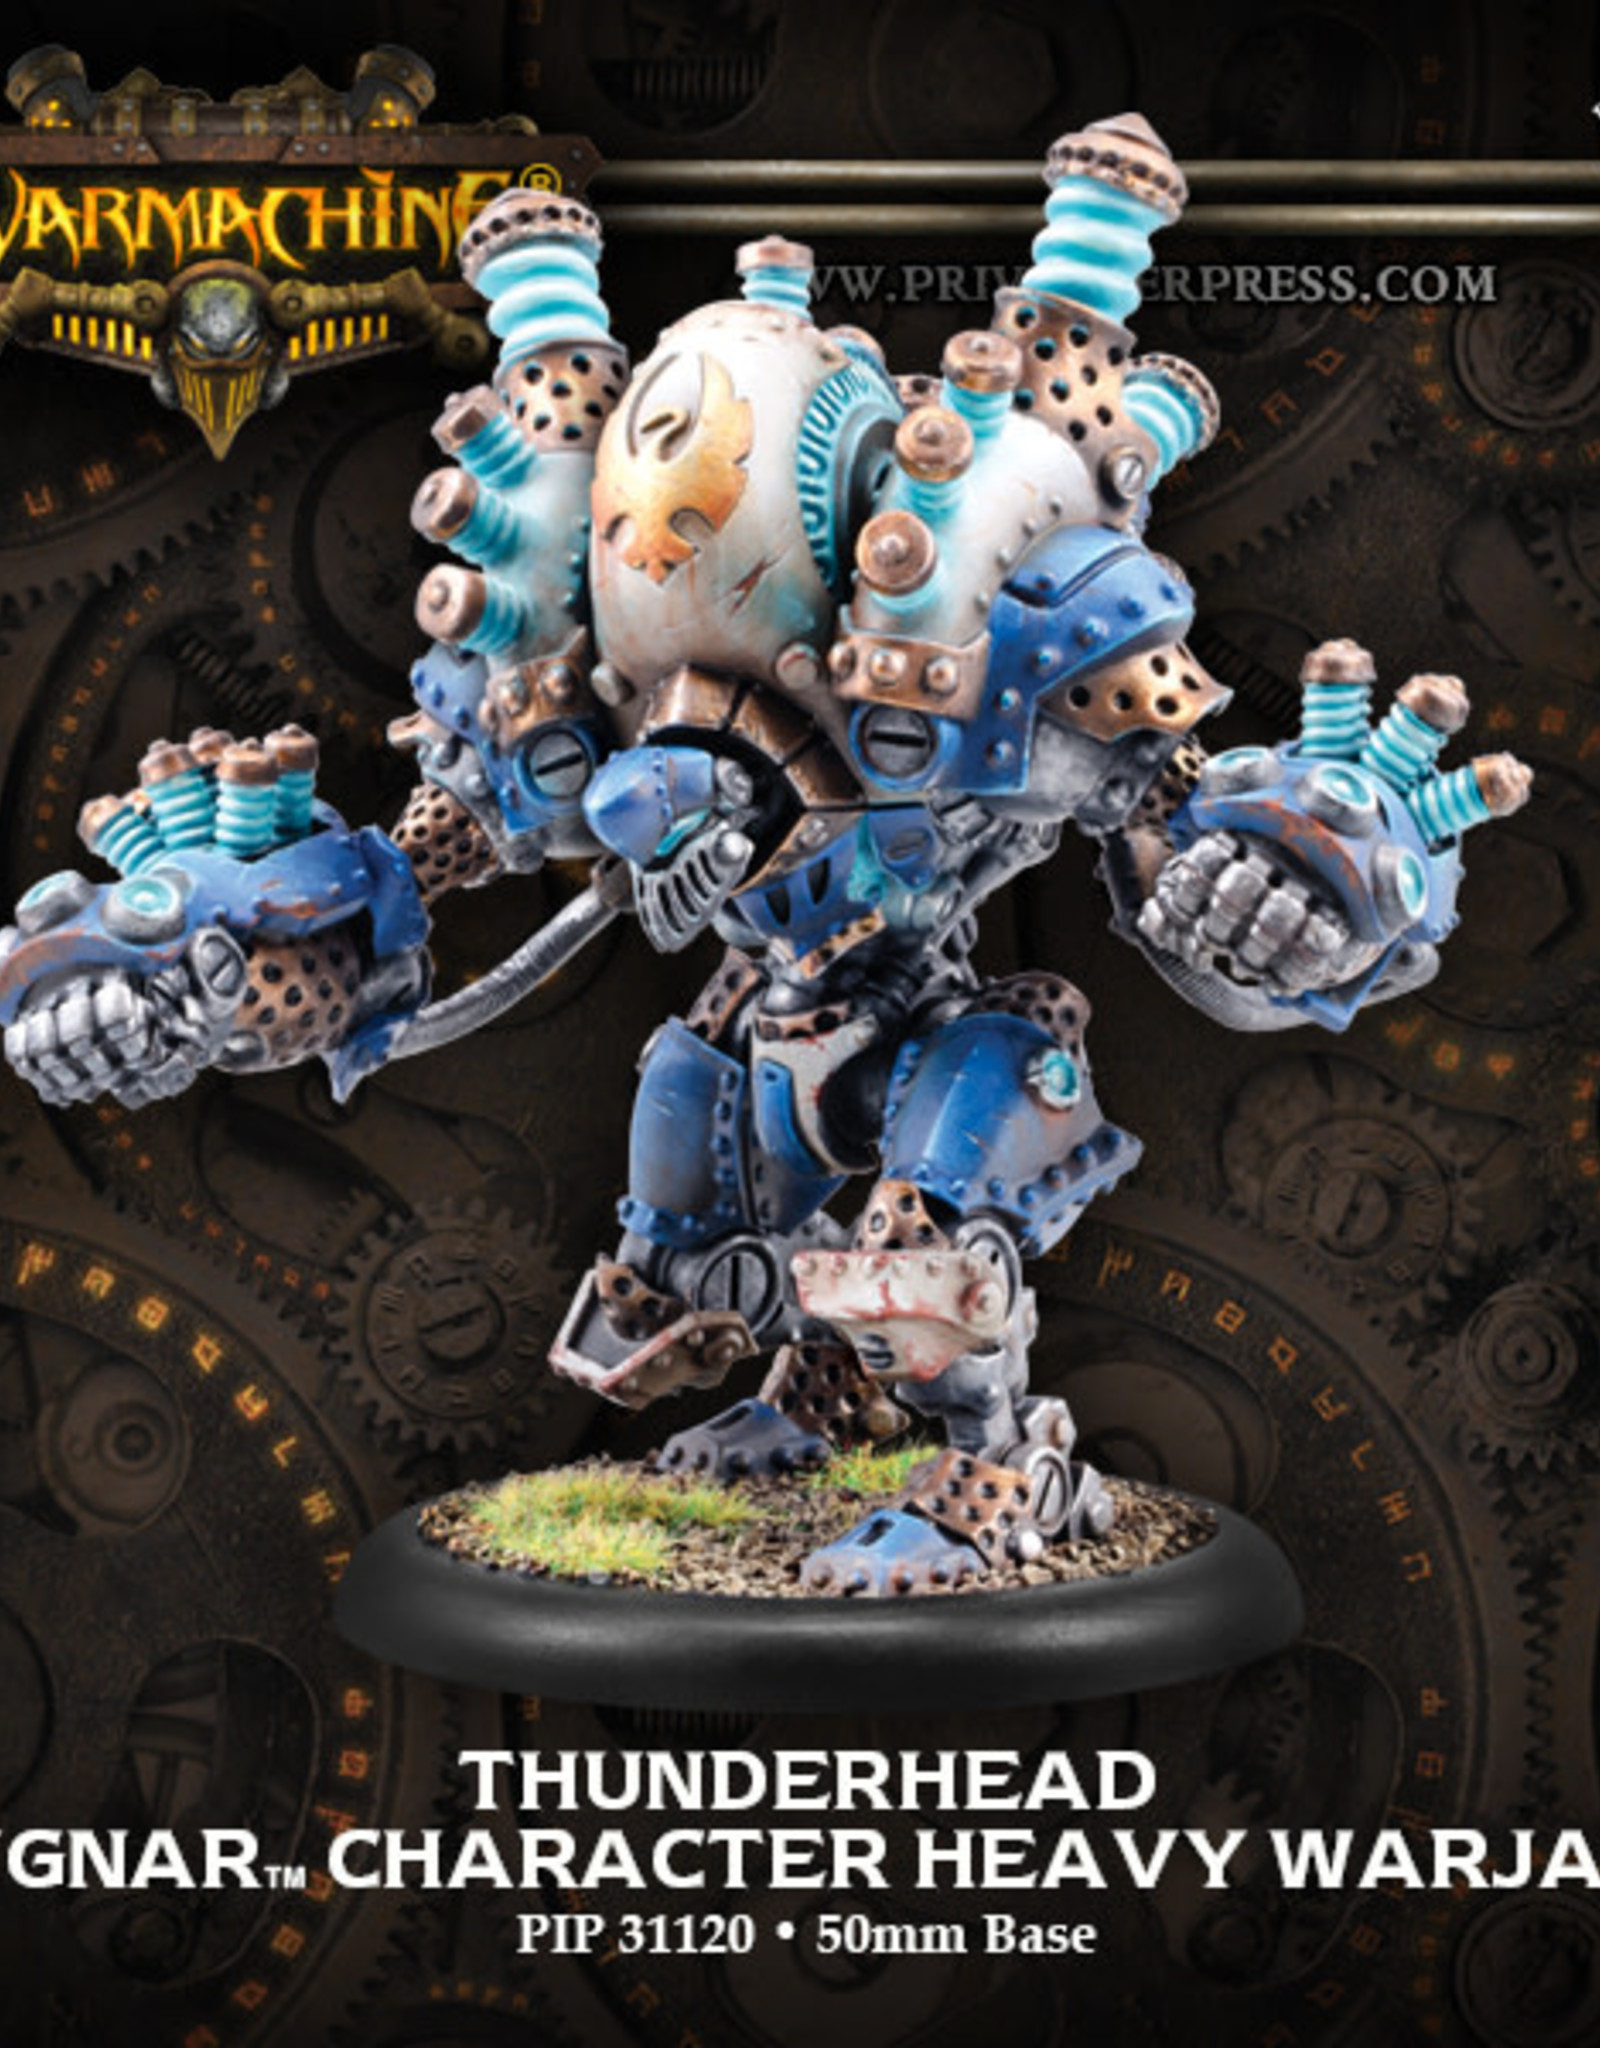 Warmachine Cygnar - Thunderhead